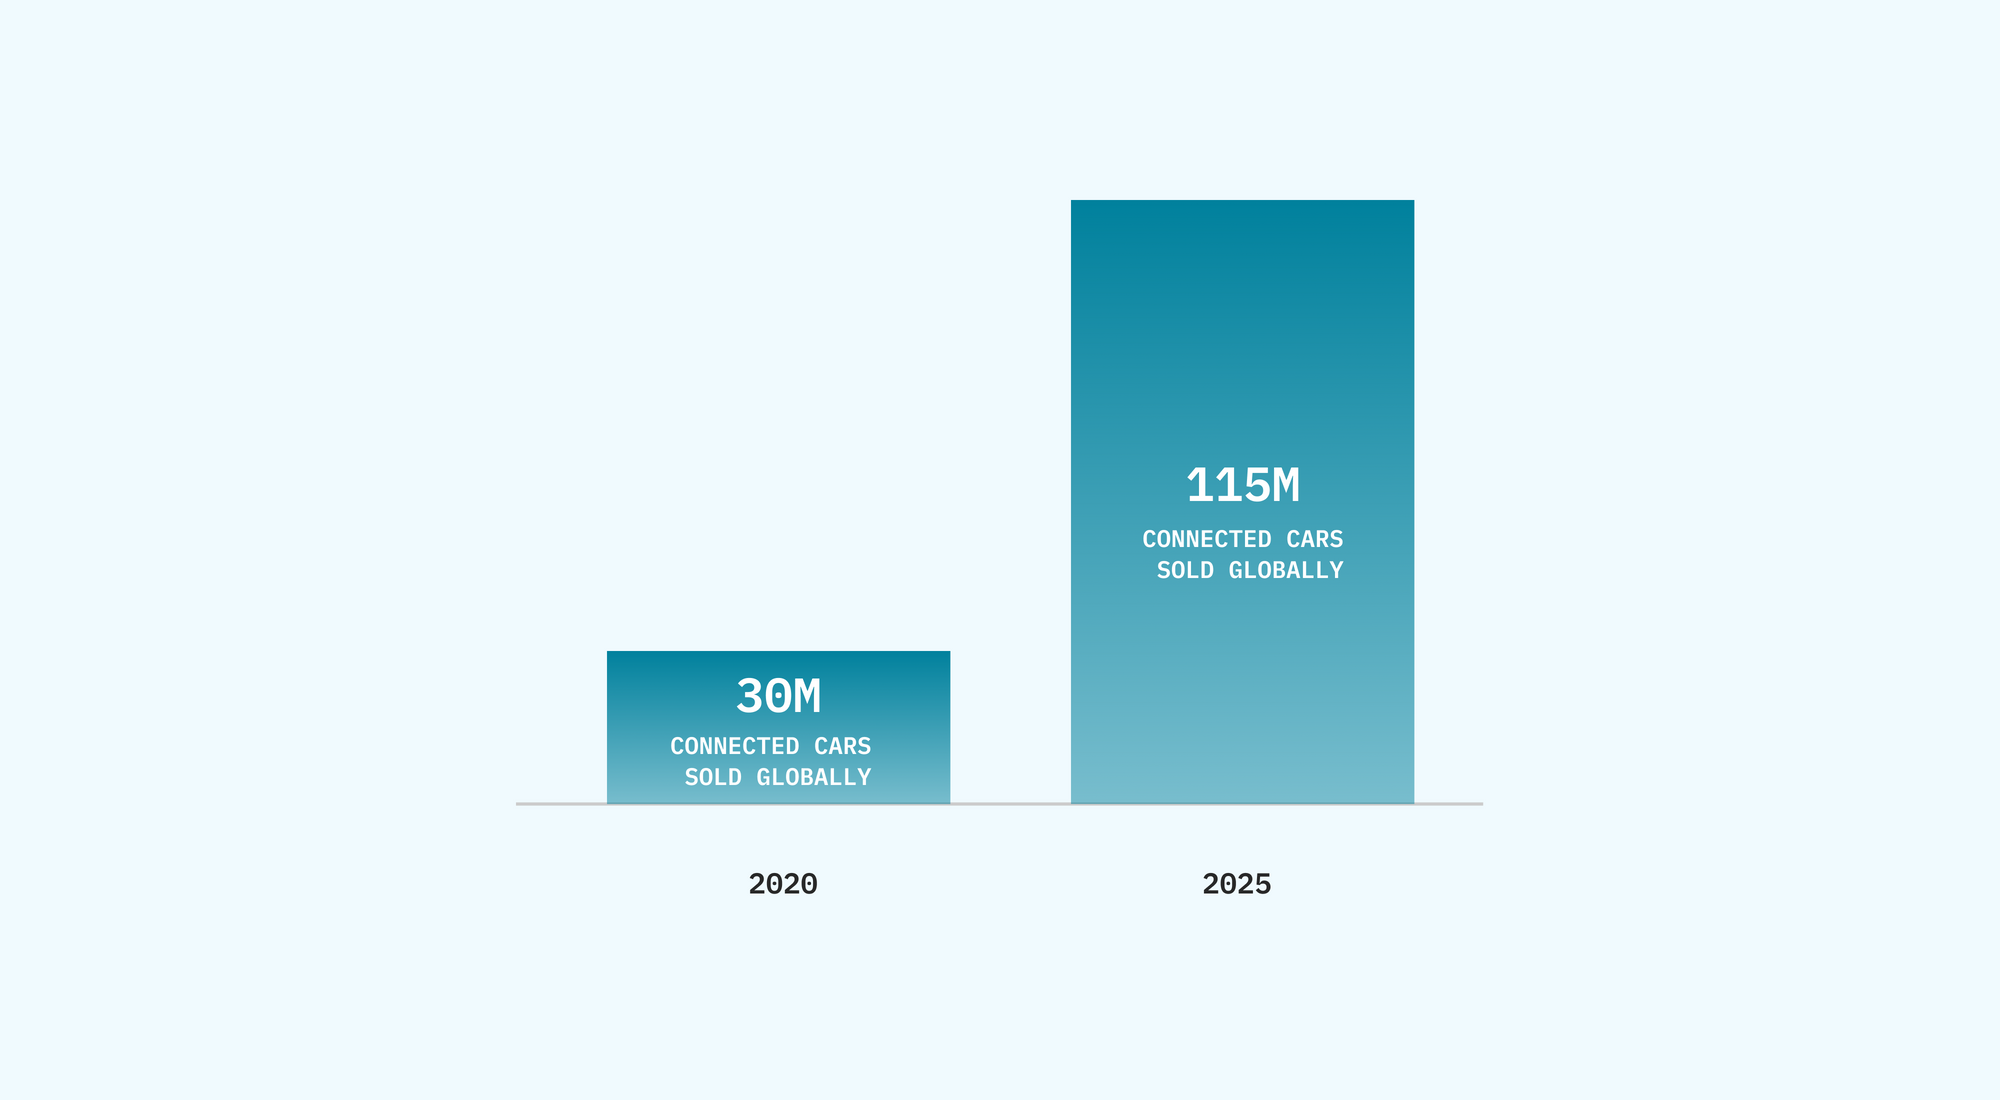 Bar chart showing a bar for 30 million connected cars sold globally in 2020 and another bar for 115 million connected cars expected to be sold globally in 2025.